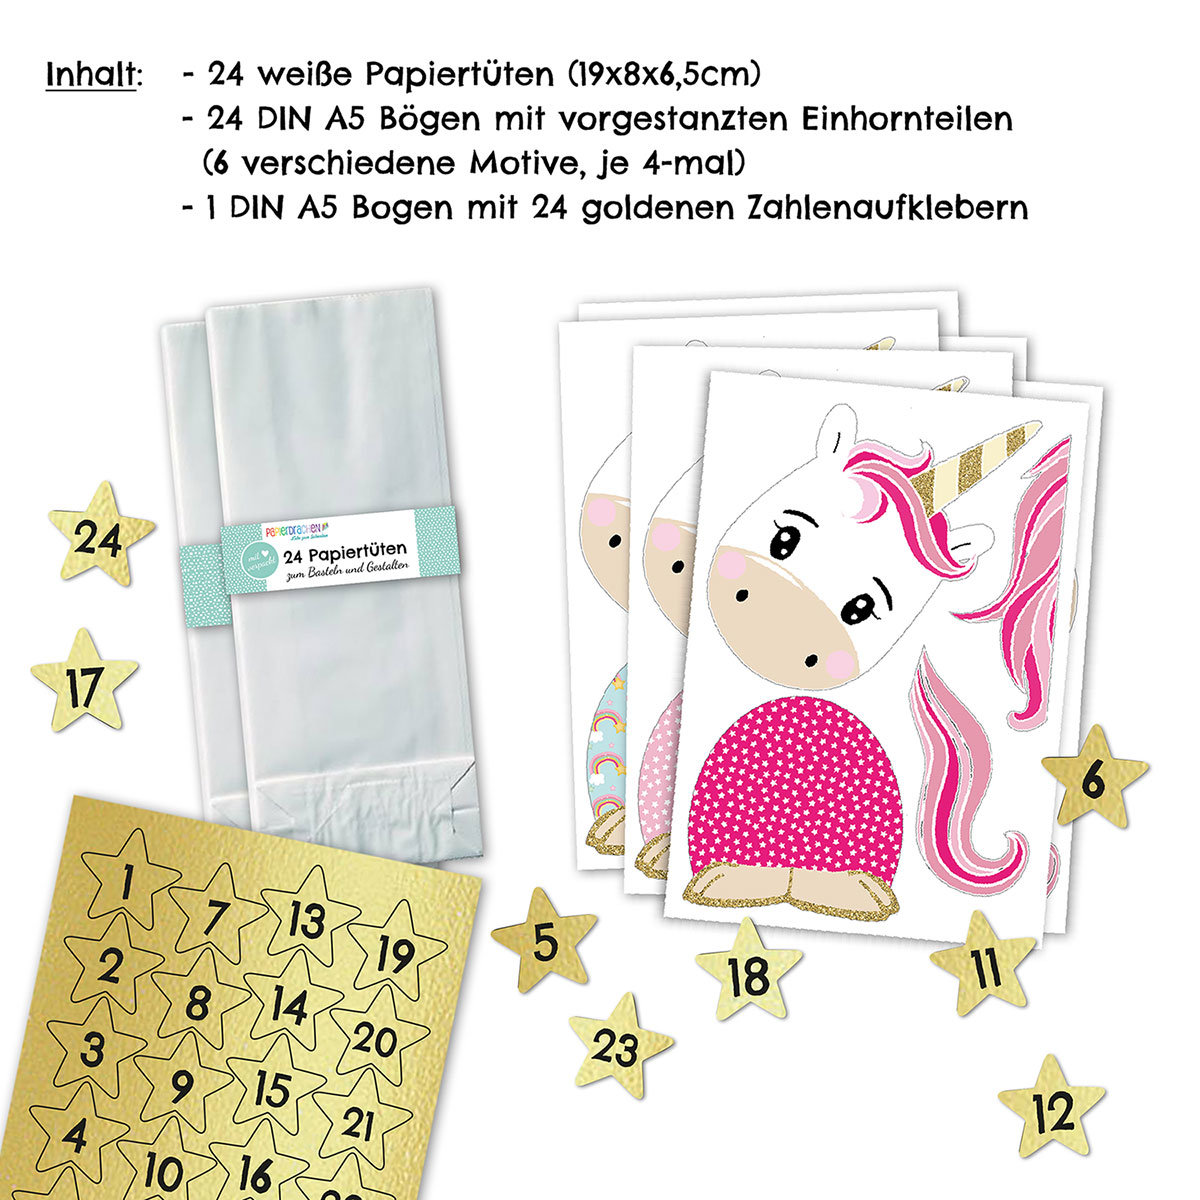 diy einhorn adventskalender zum selber basteln. Black Bedroom Furniture Sets. Home Design Ideas